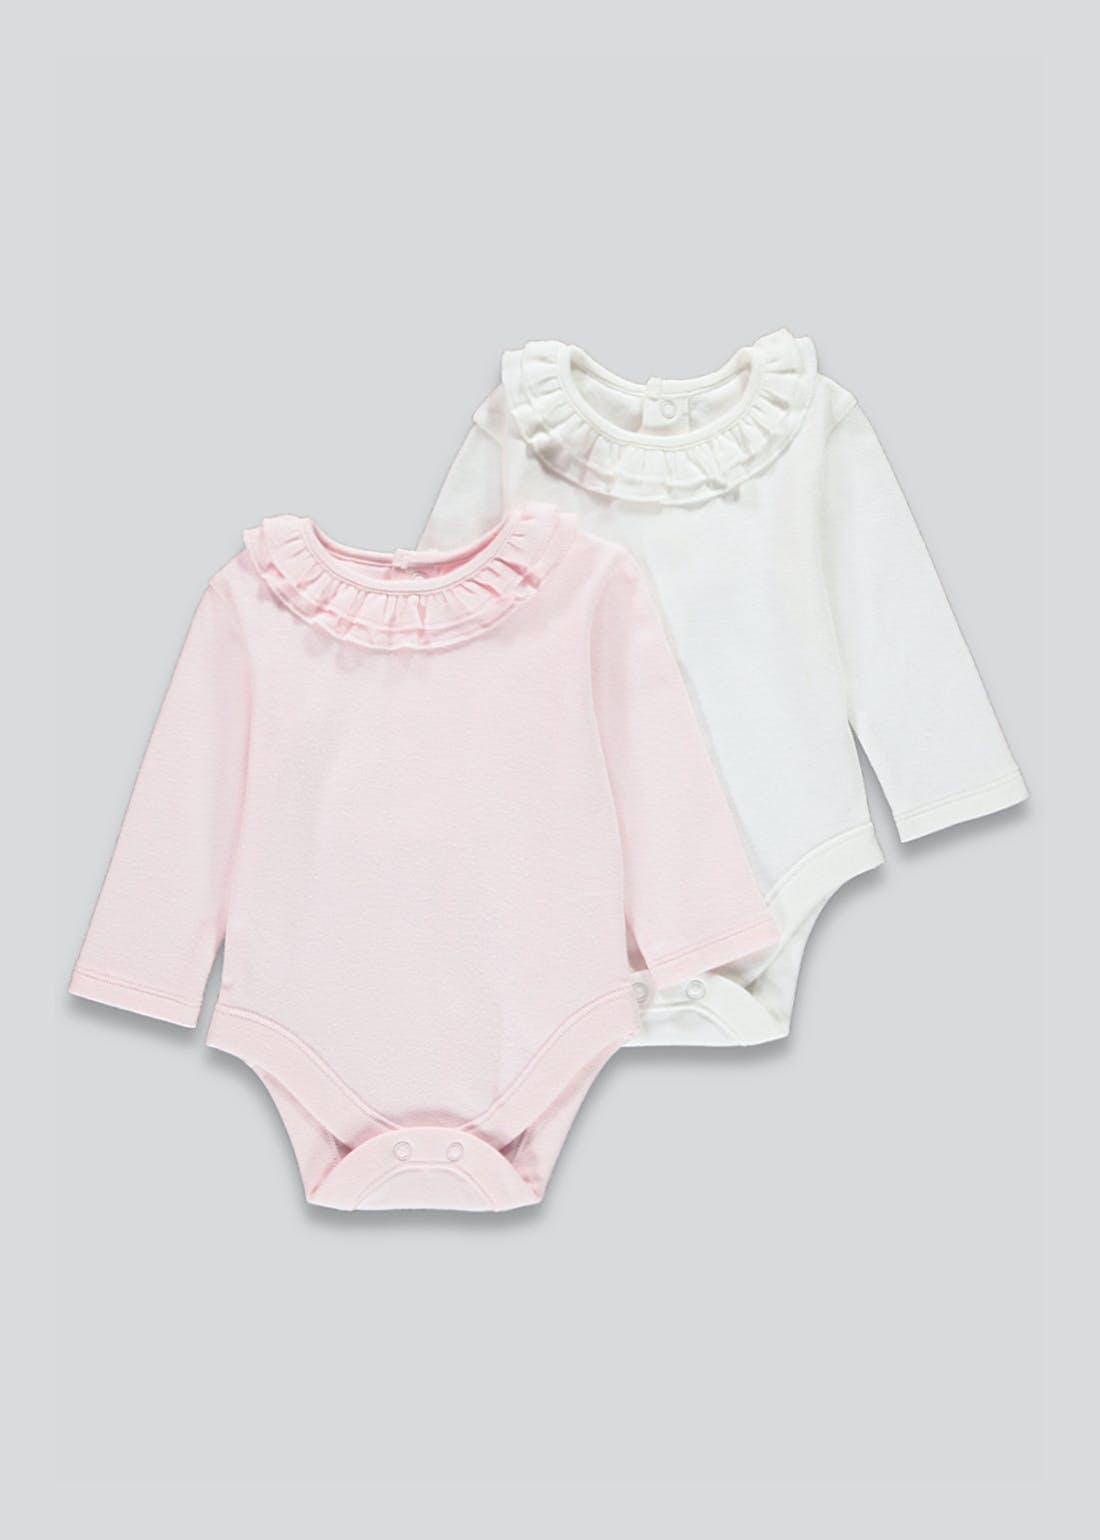 Girls 2 Pack Long Sleeve Frill Bodysuits (Tiny Baby-18mths)